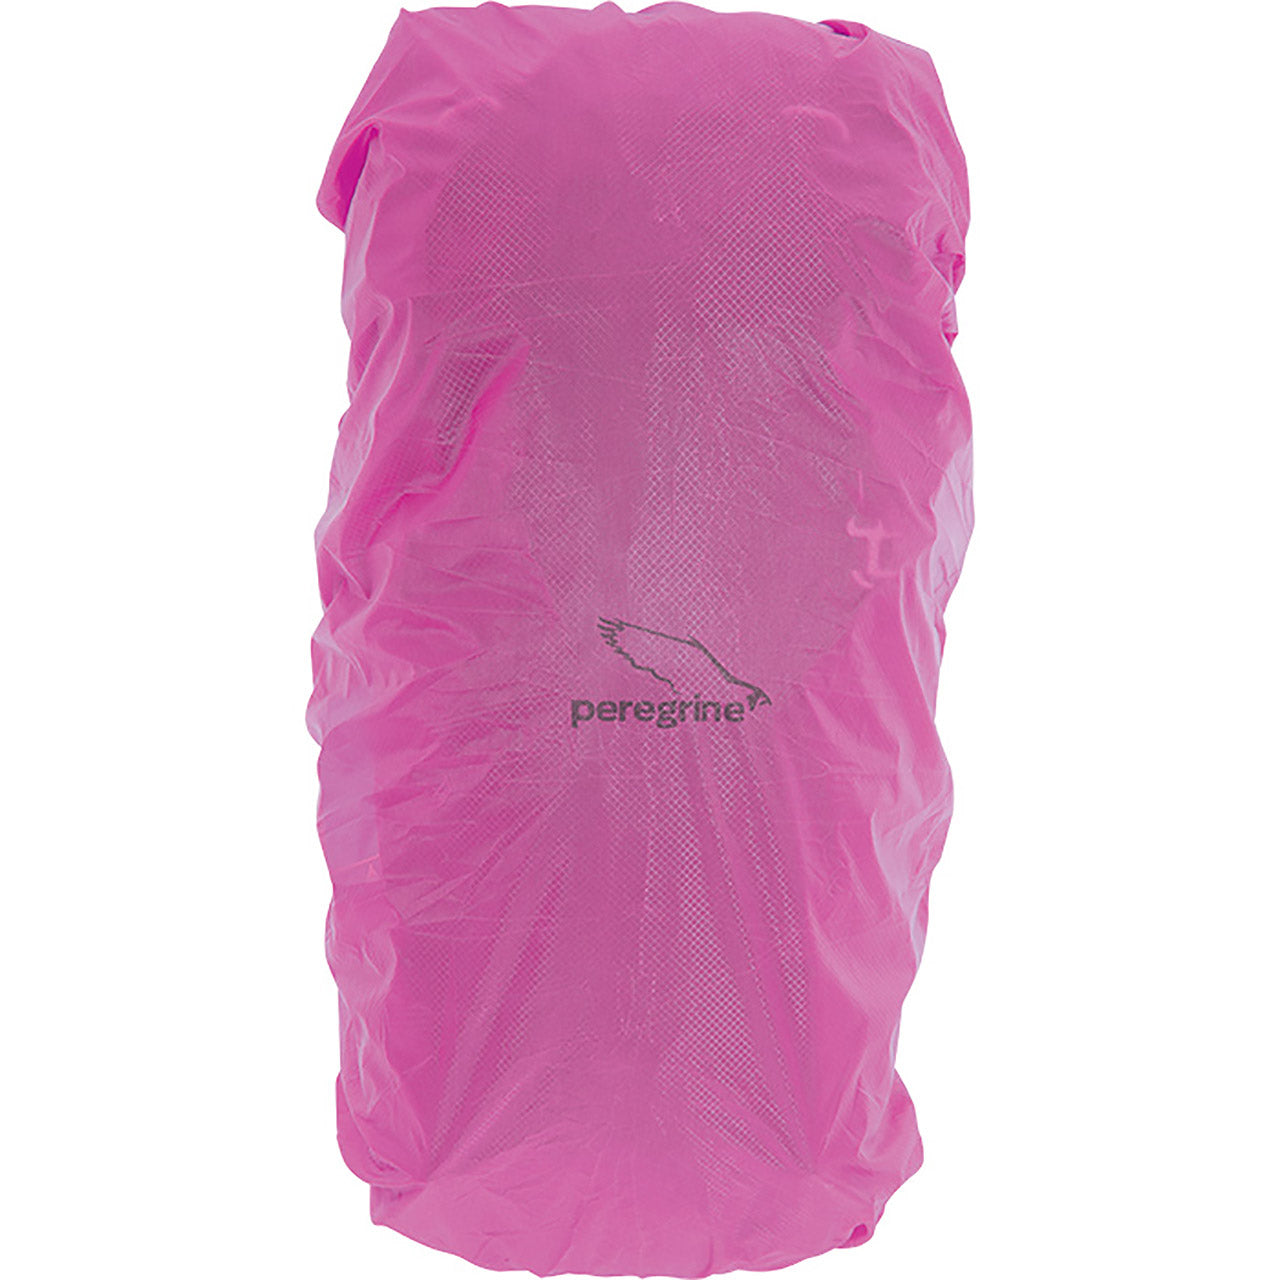 Peregrine Ultralight Backpack Rain Cover 40 to 60 Liter